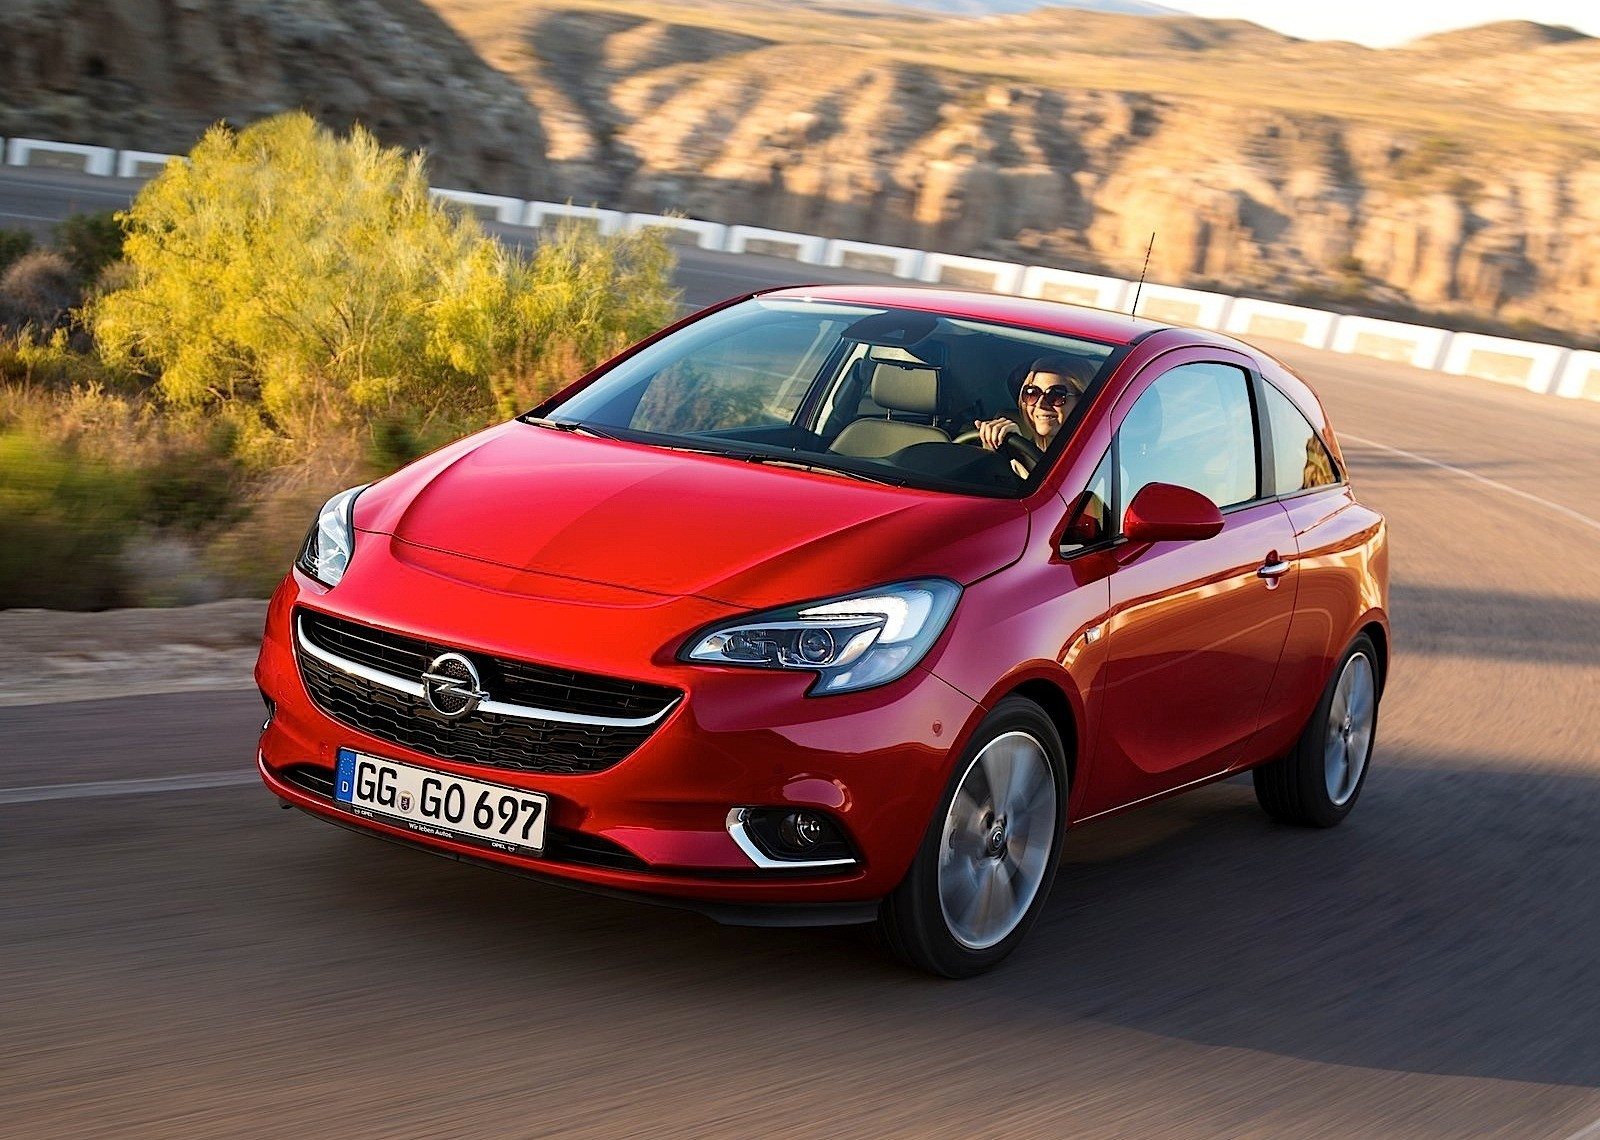 2017 opel vauxhall corsa uk review highlights more flaws. Black Bedroom Furniture Sets. Home Design Ideas